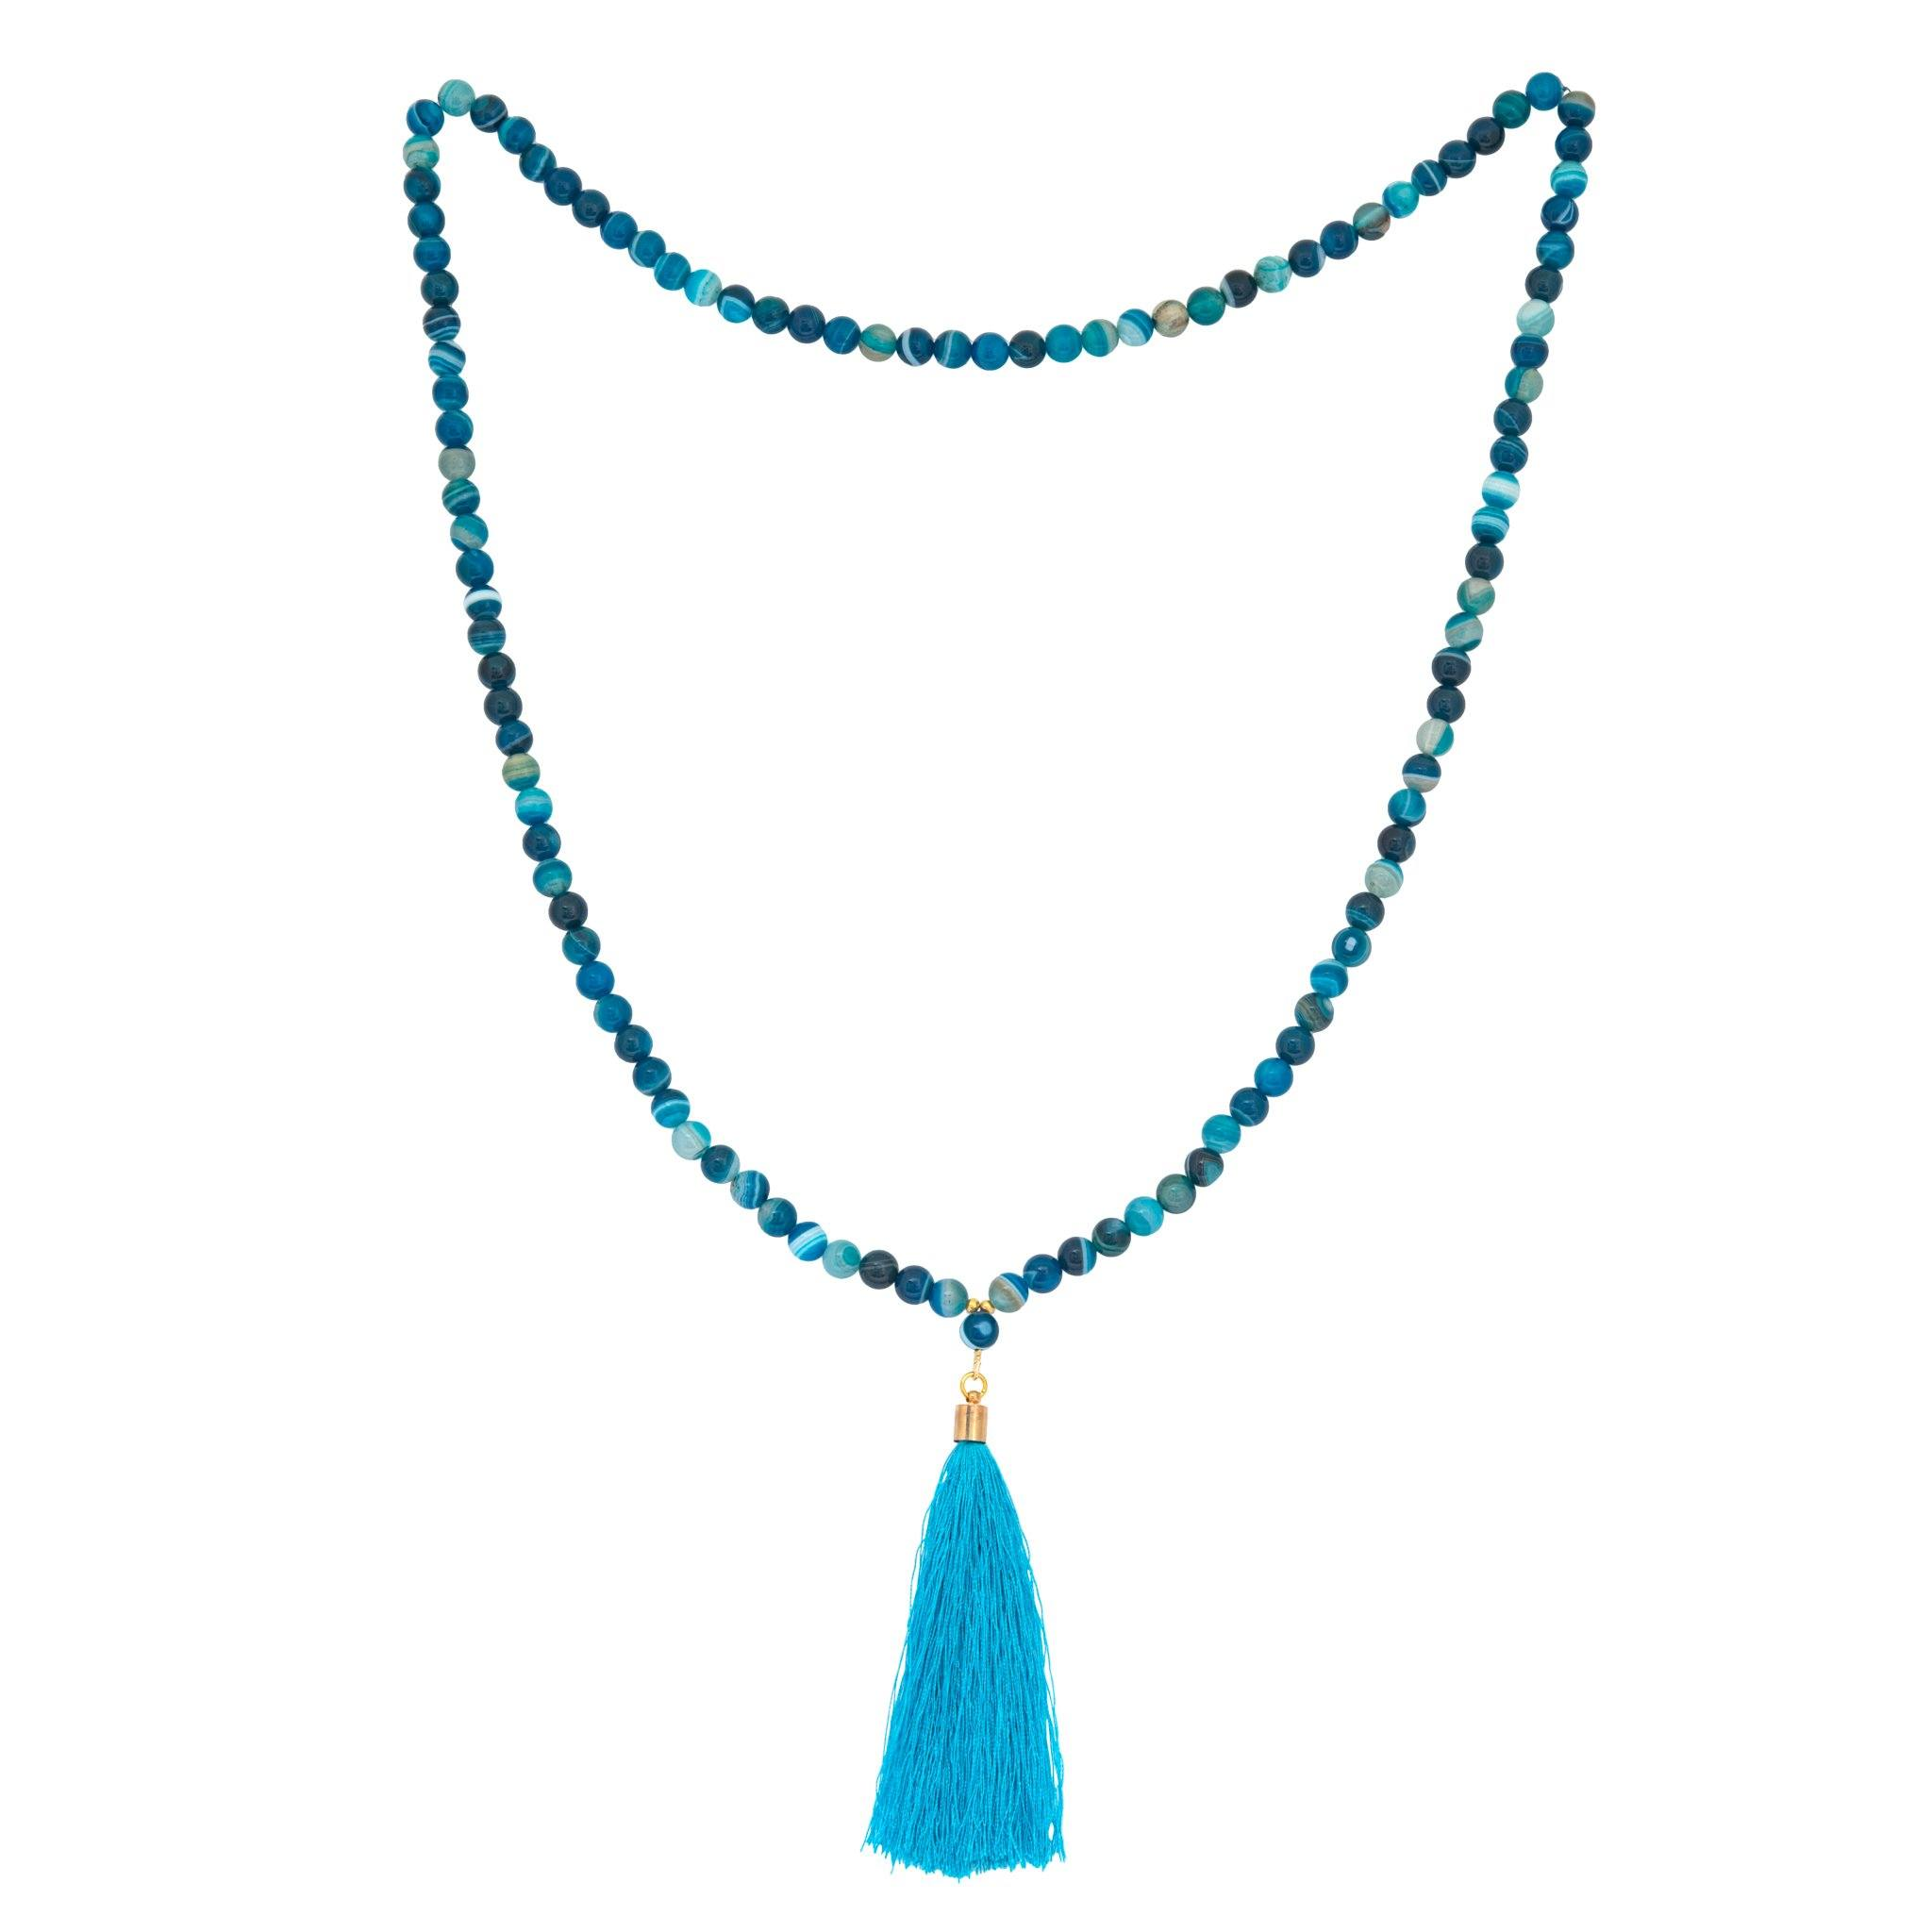 AGA blue agate long tassel necklace - MadamSiam